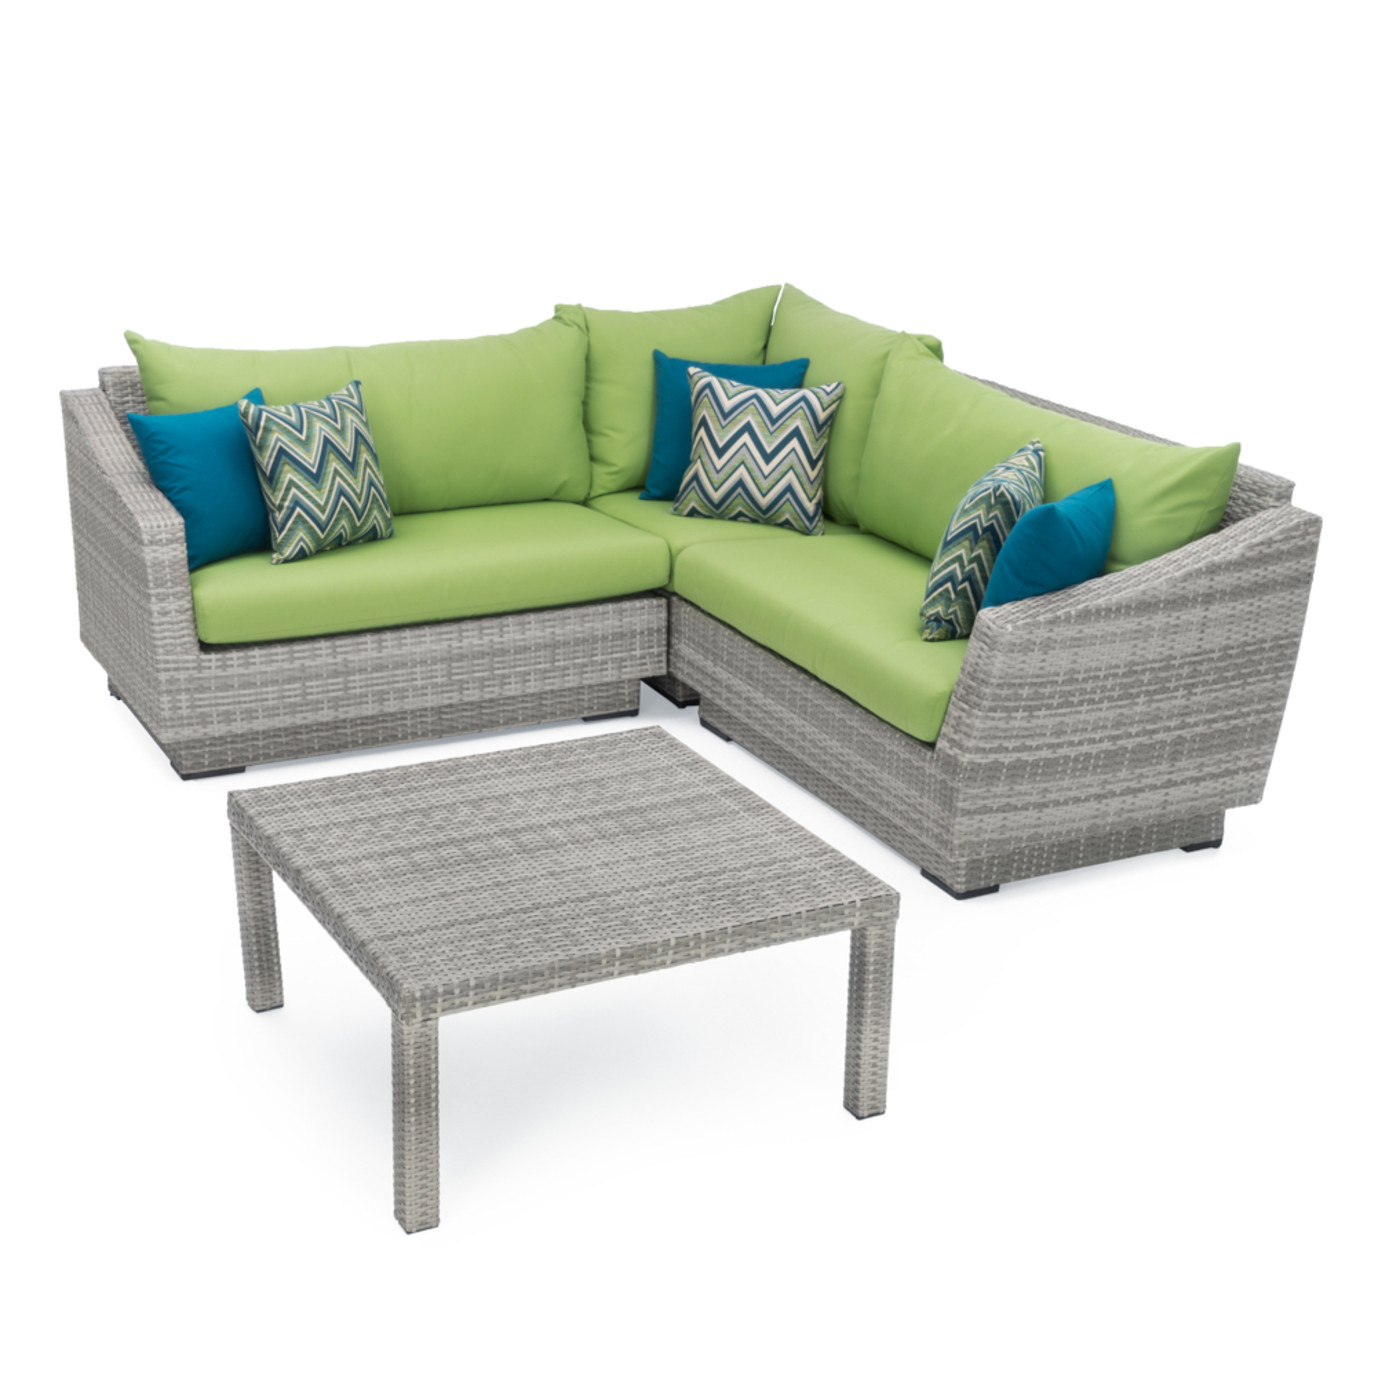 Cannes™ 4 Piece Sectional & Table - Ginkgo Green